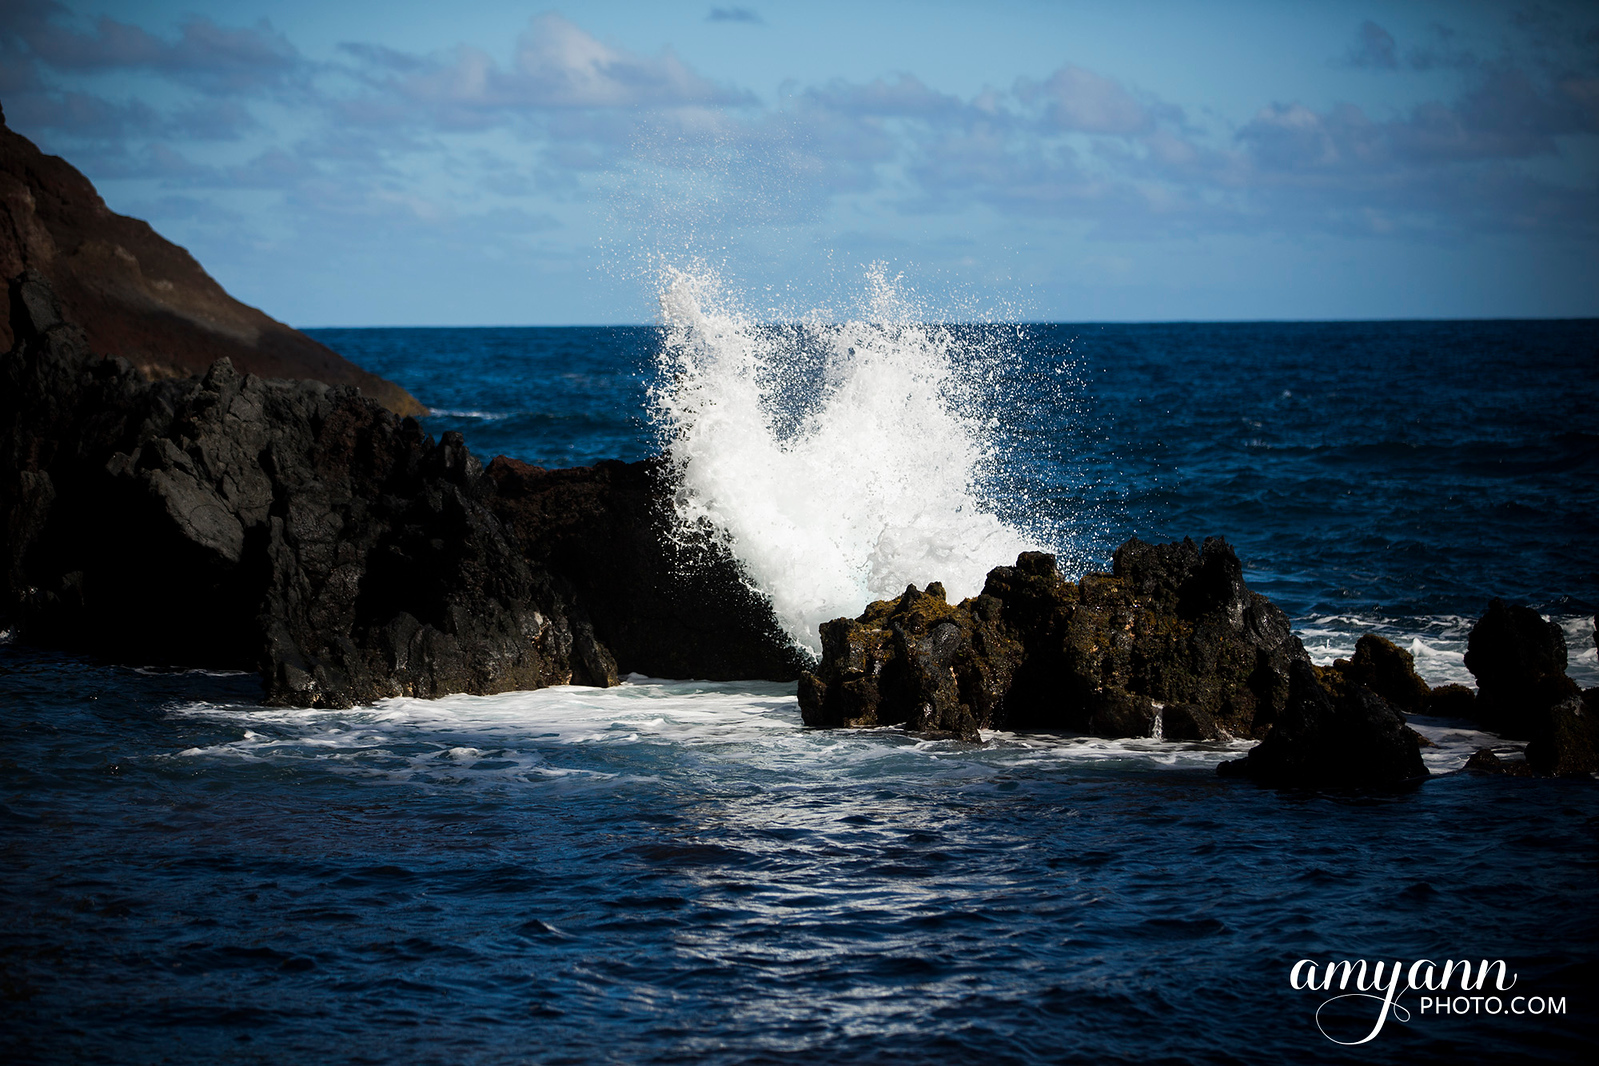 hawaii_amyannphoto_40